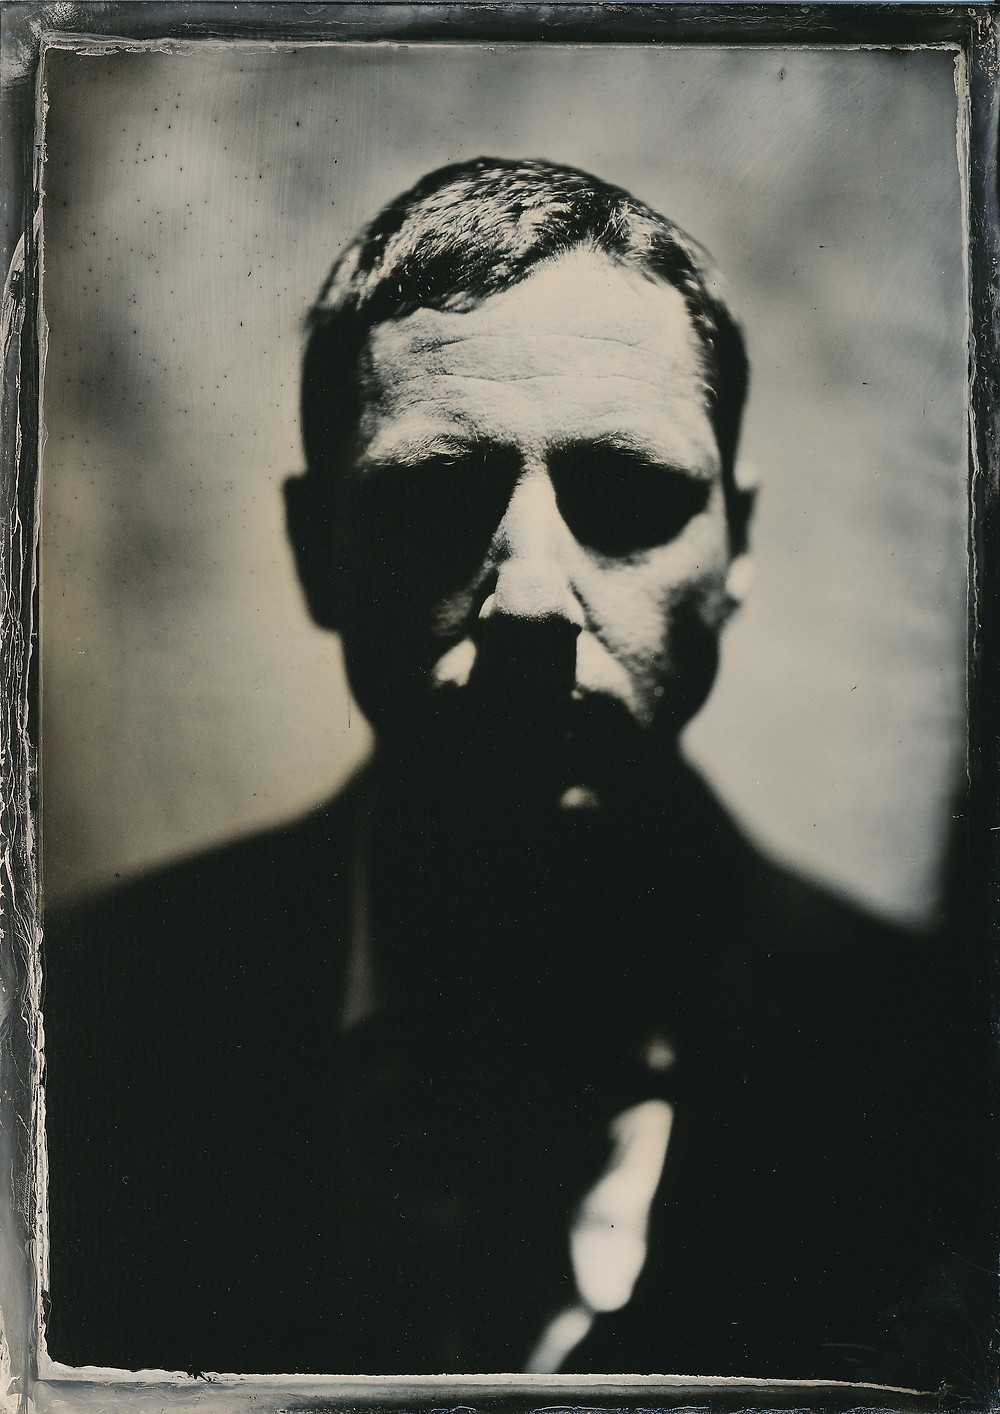 Eddie Luis on Collodion by Patrick Weninger